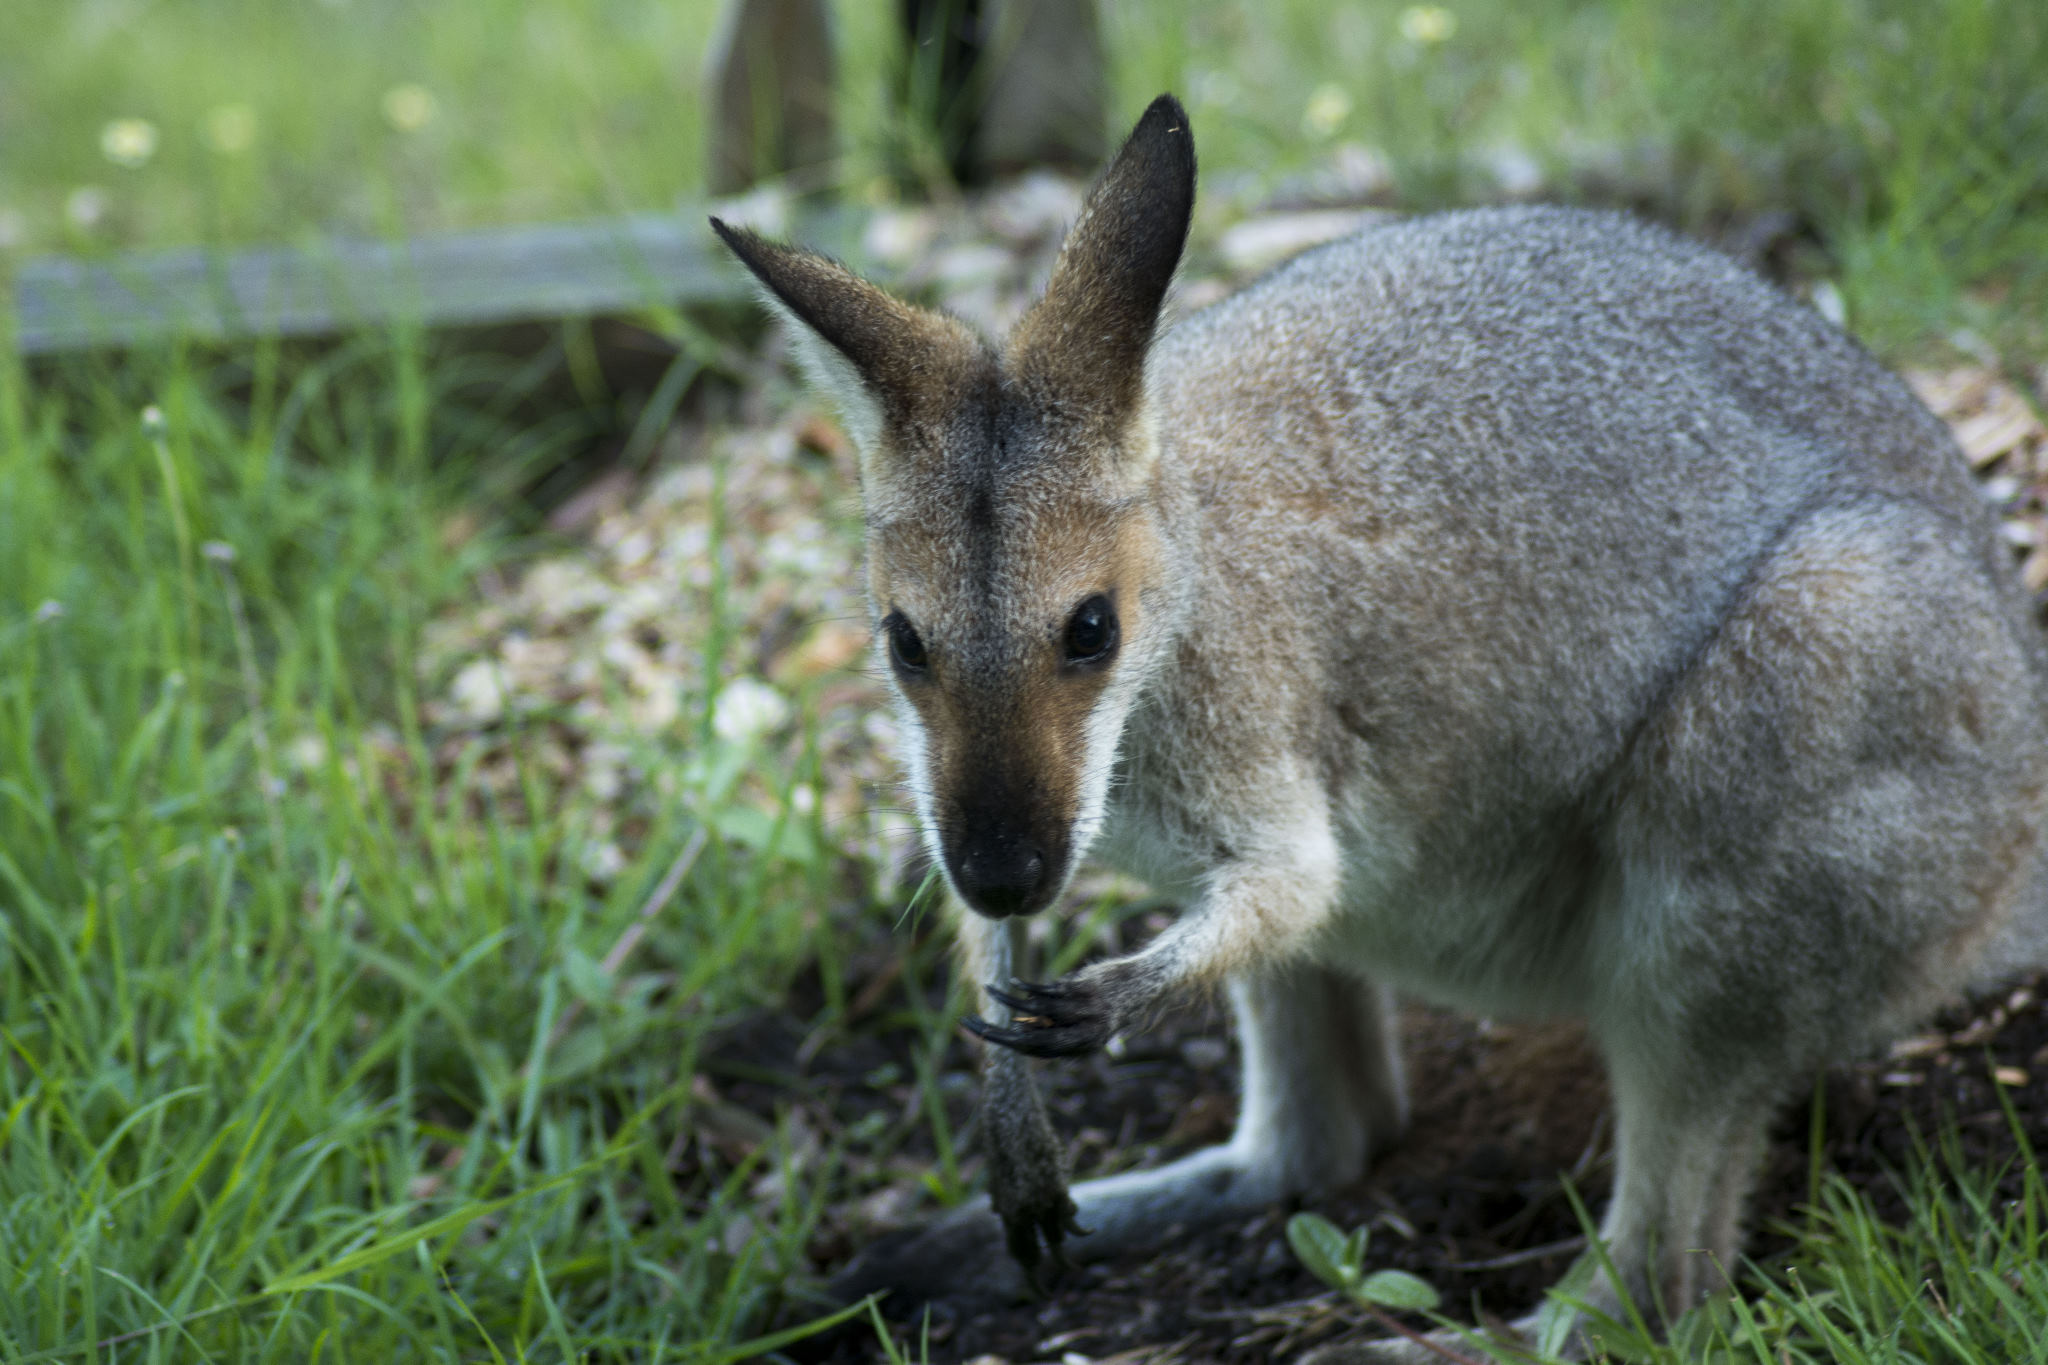 Georgie - Our visiting Red-necked Wallaby